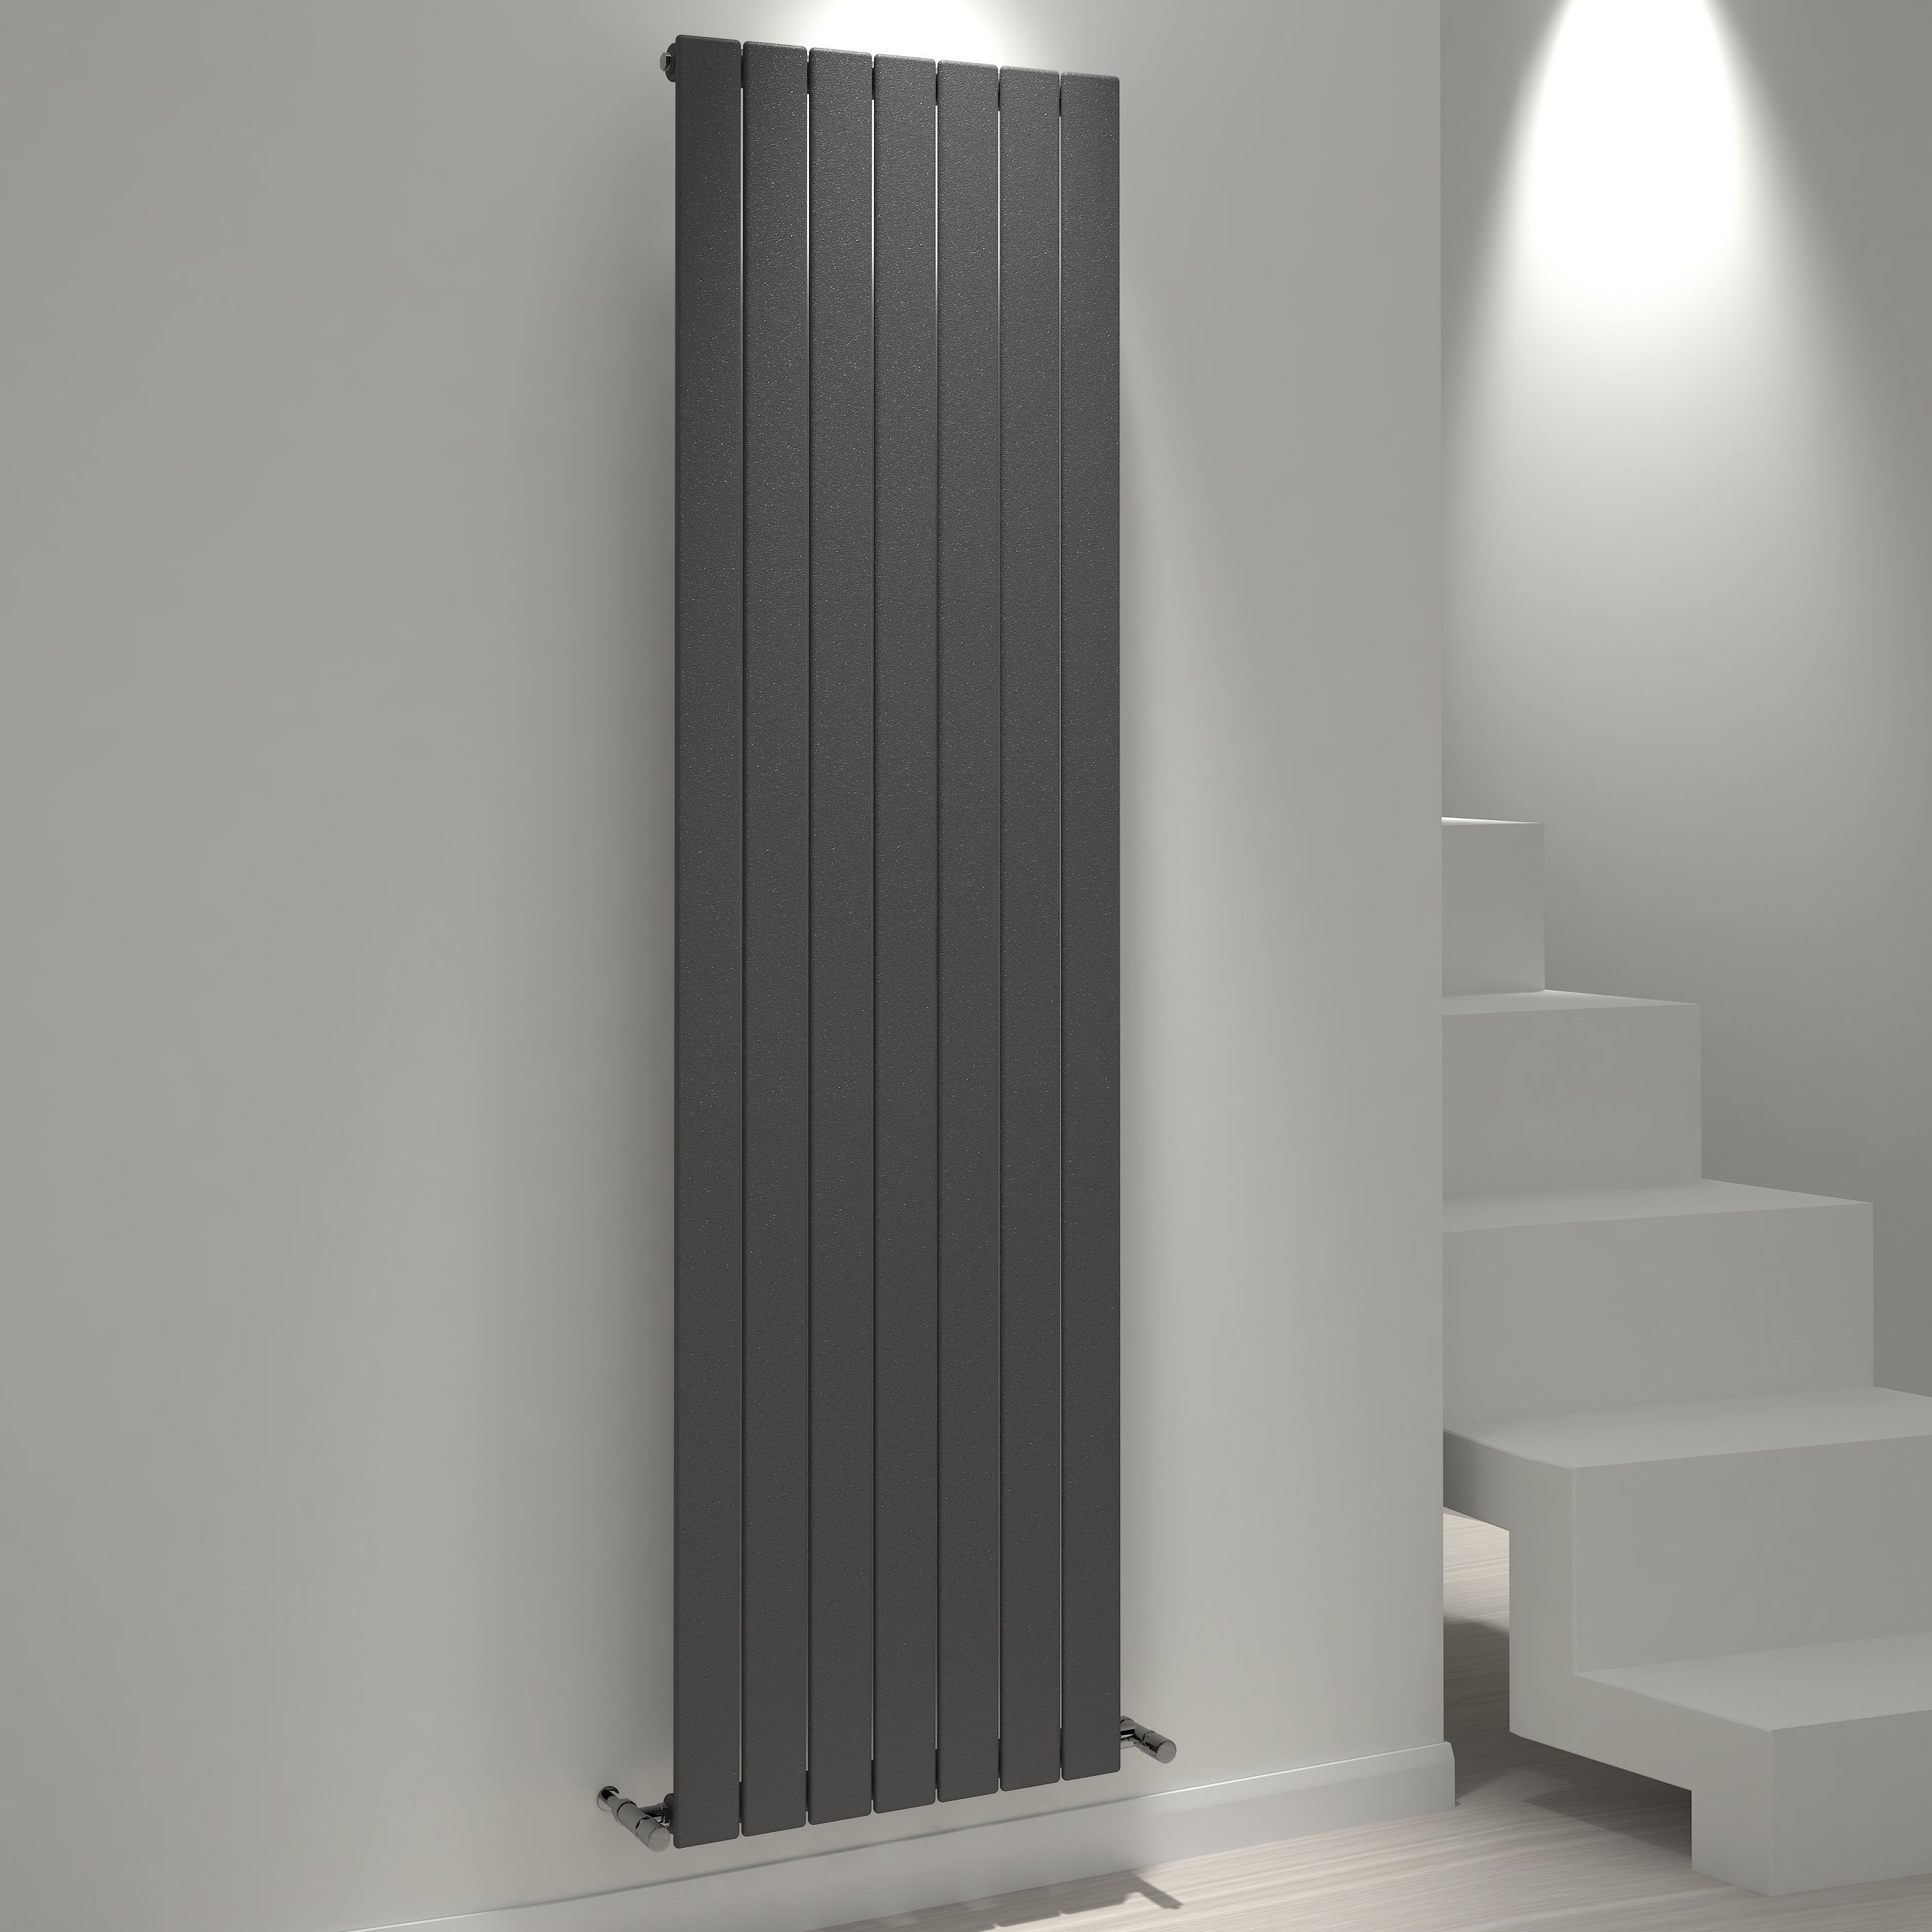 Kudox Tira Vertical Radiator Anthracite (h)1800 Mm (w)514 Mm